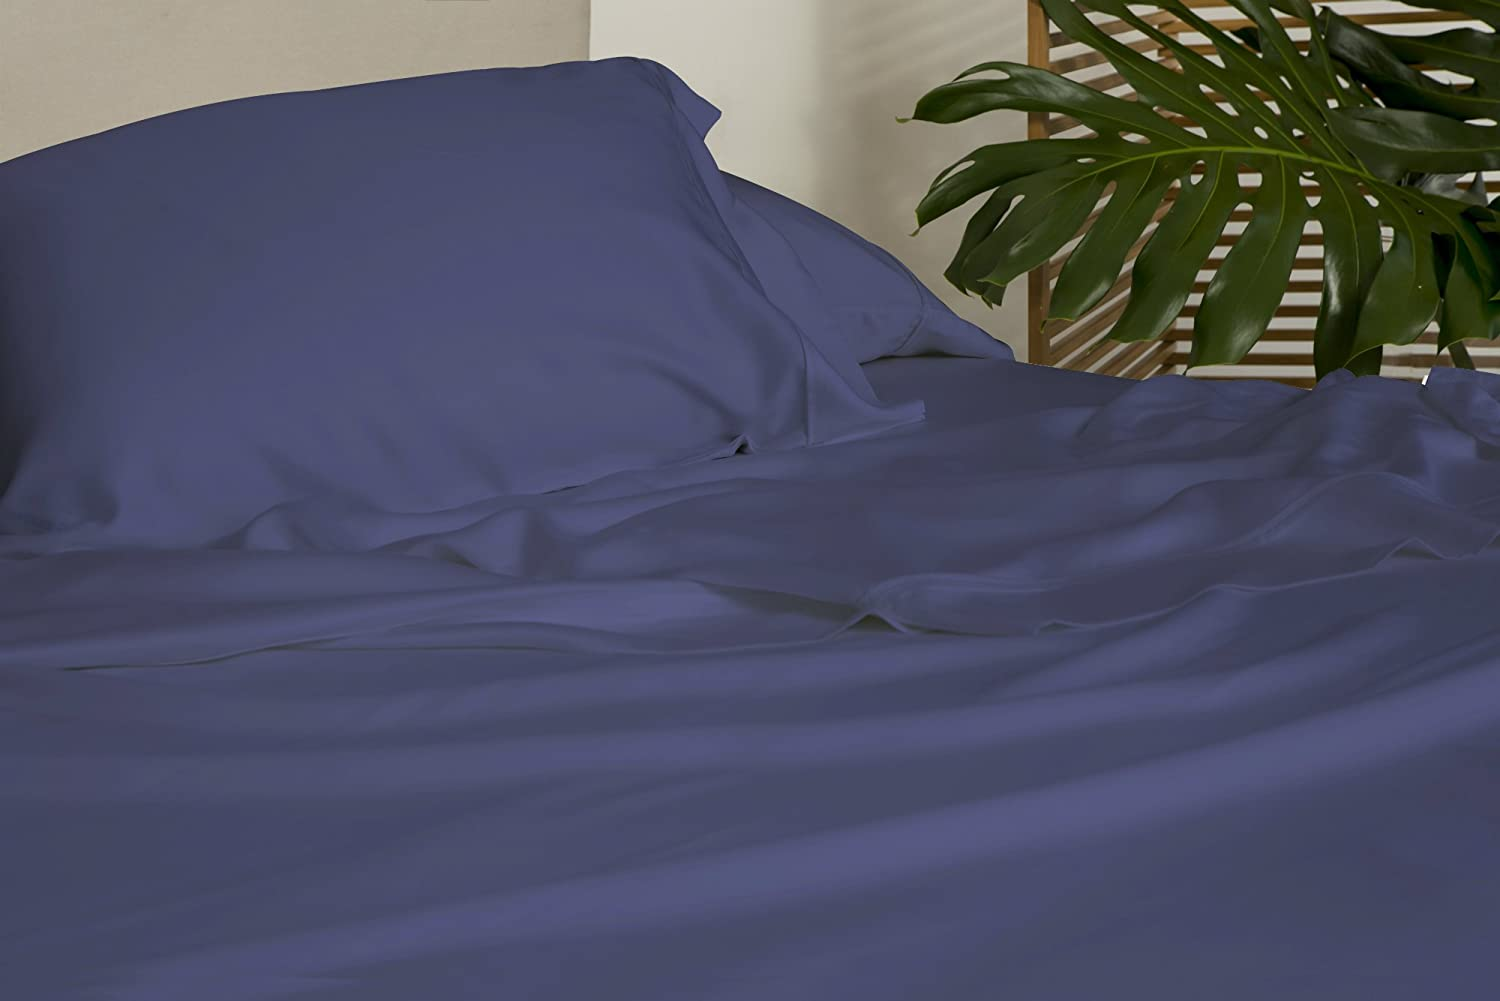 SHEEX Arctic Aire Max Sheet Set with 1 Pillowcase, 100% Tencel with CoolX Technology, Denim, Twin